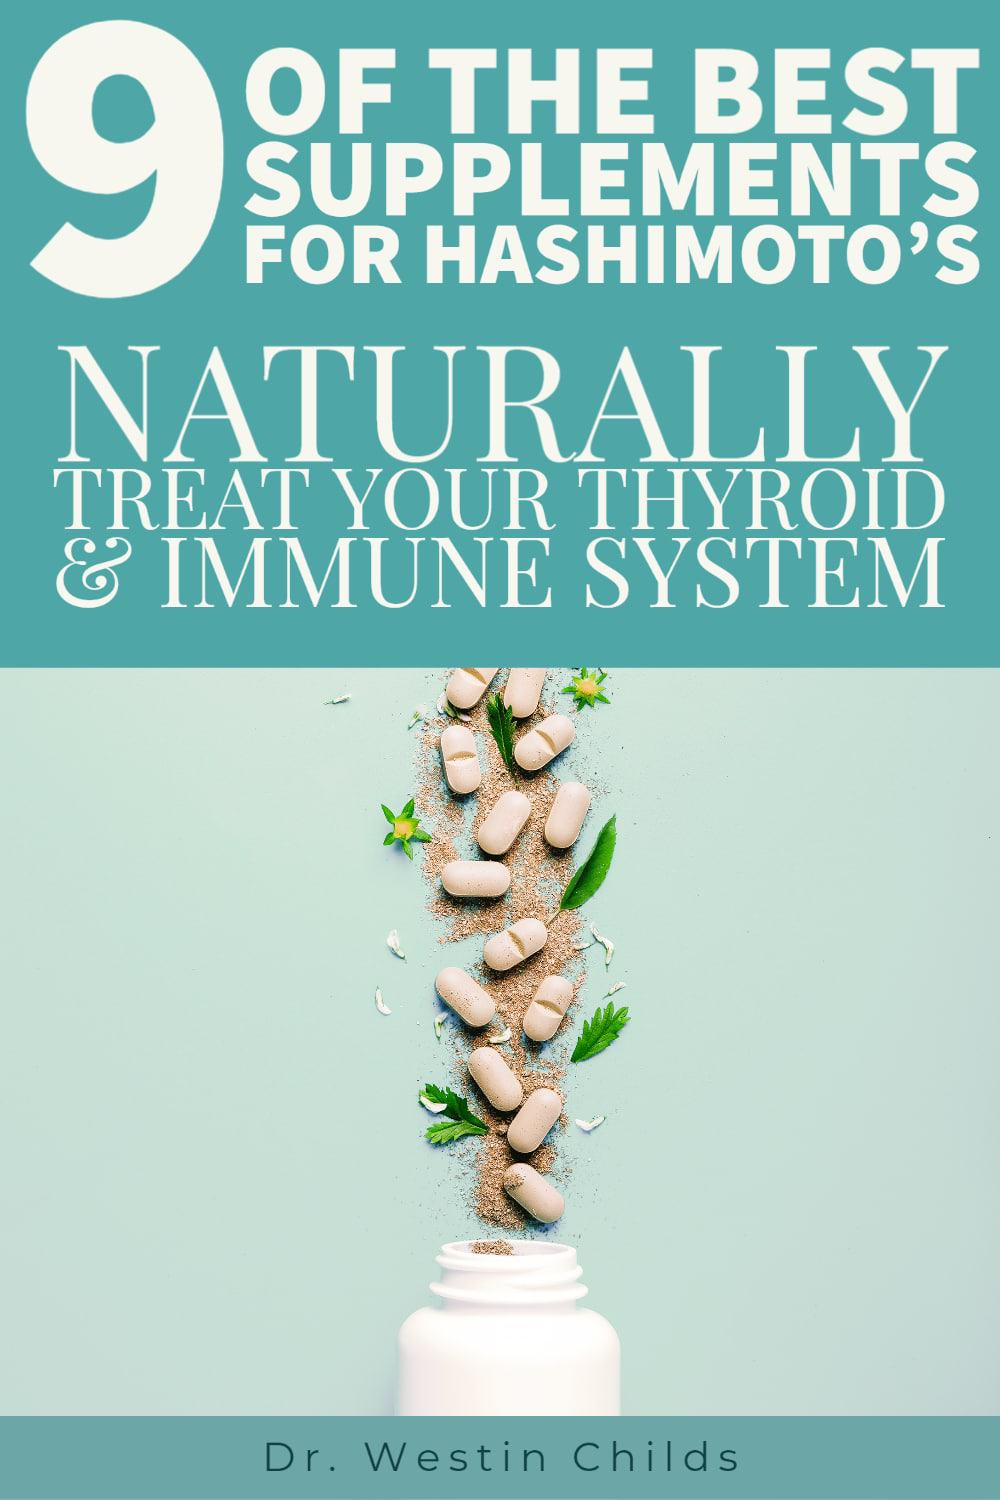 9 of the best hashimoto's supplements